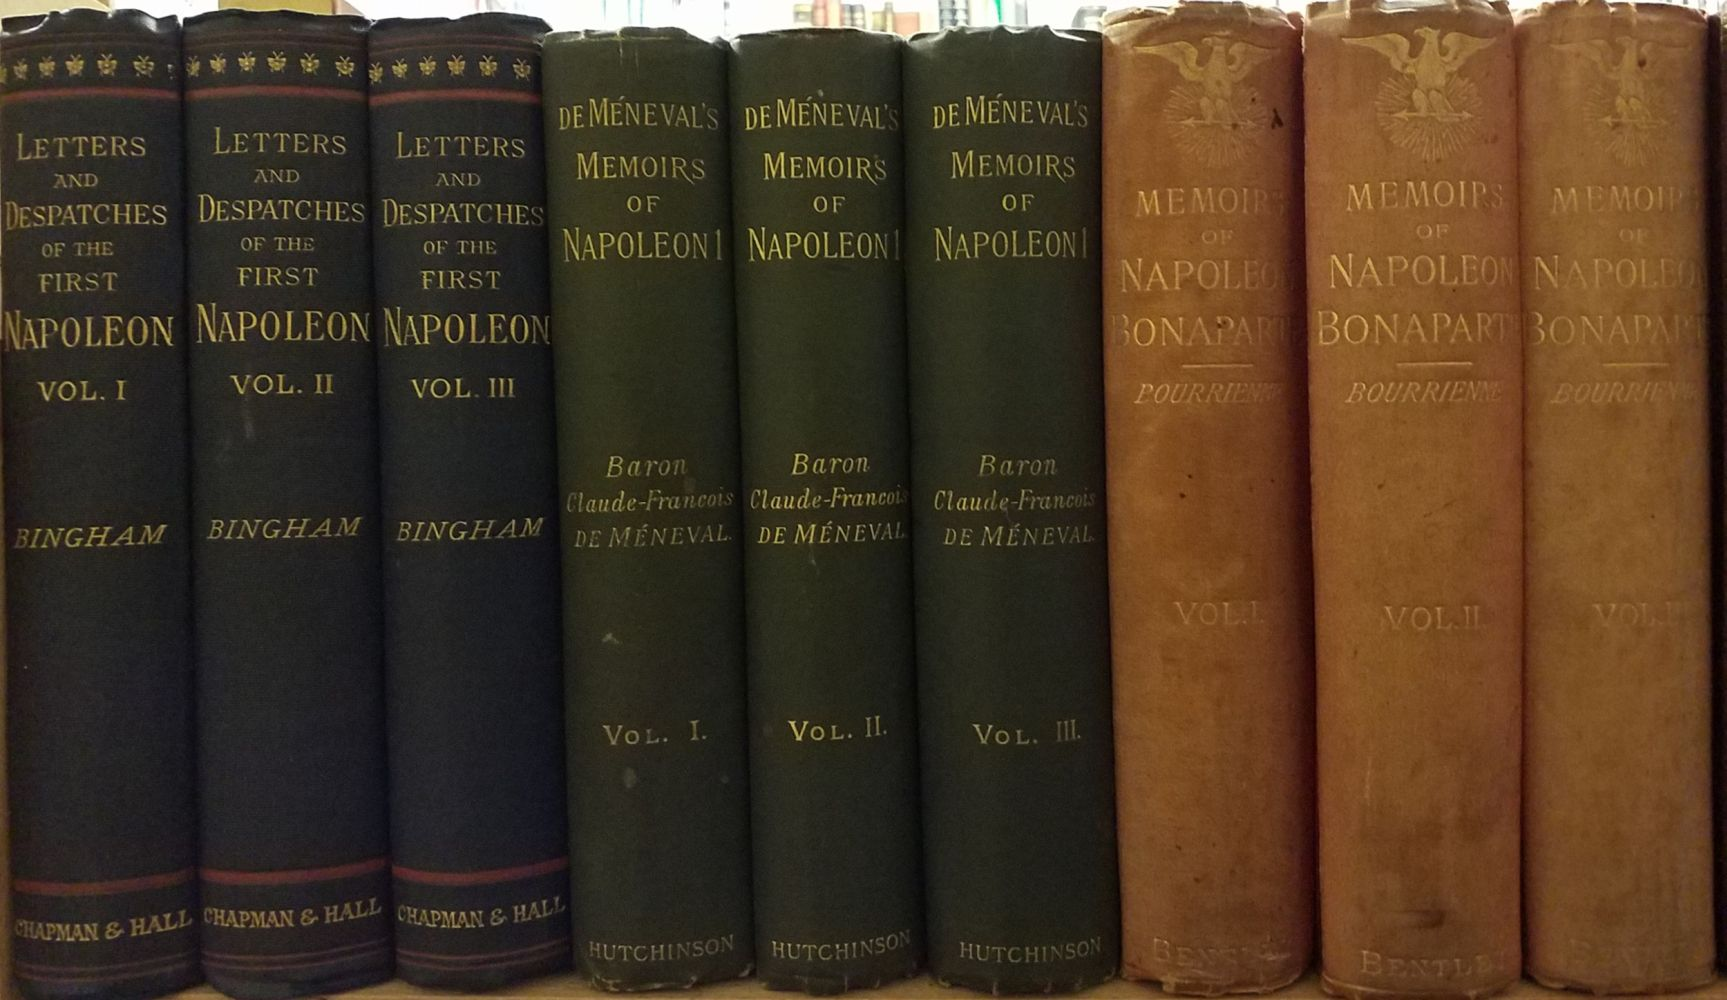 Bingham (Denis A.). A Selection from the letters and despatches of the First Napoleon, 3 vols., - Image 2 of 3